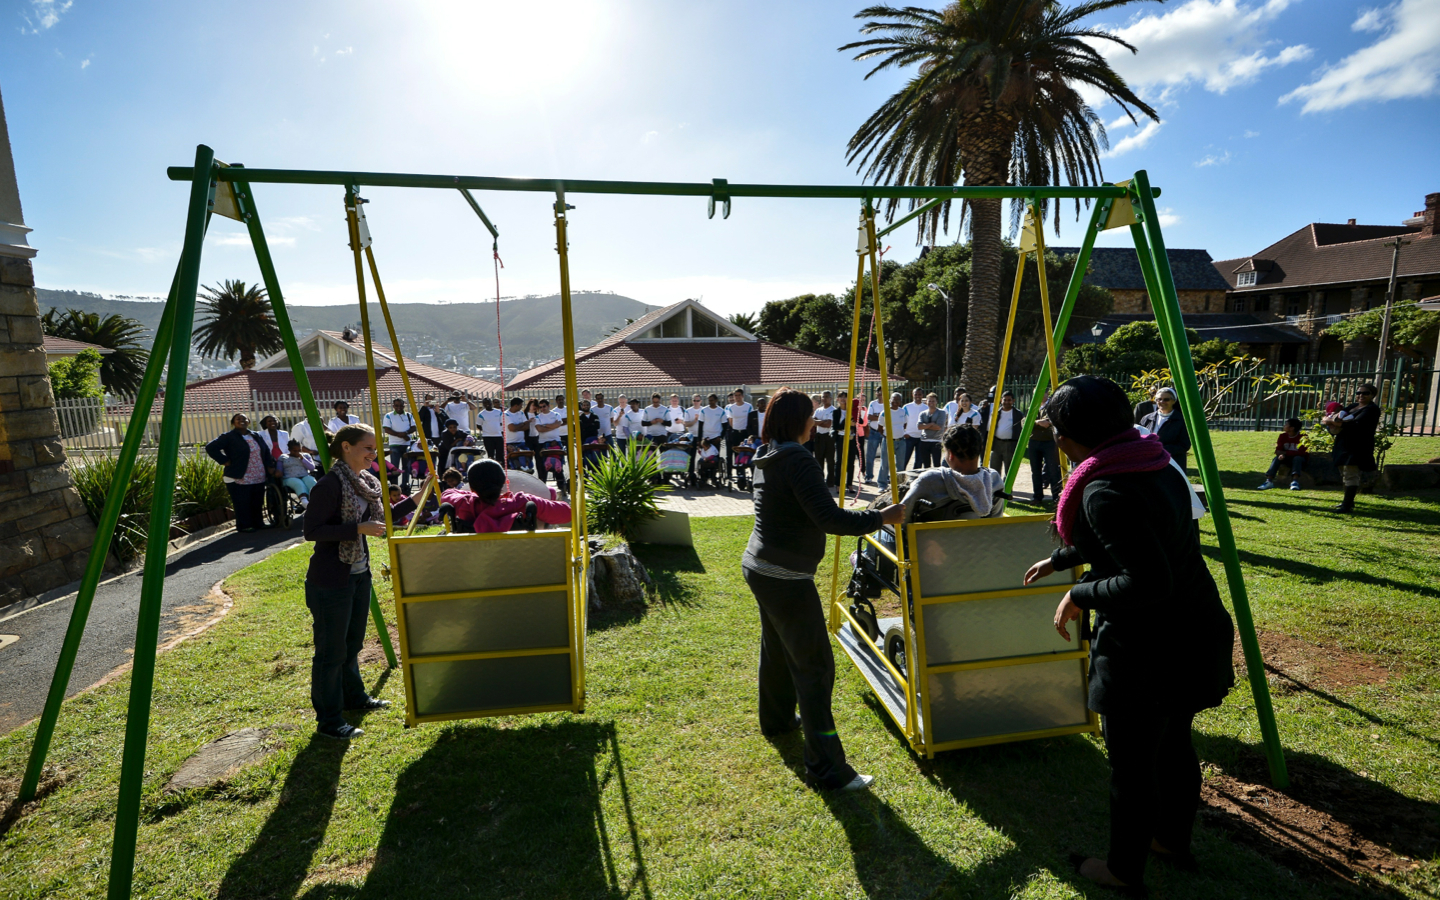 CSR EC Post.007 Corporate social responsibility captures hearts and minds in Cape Town